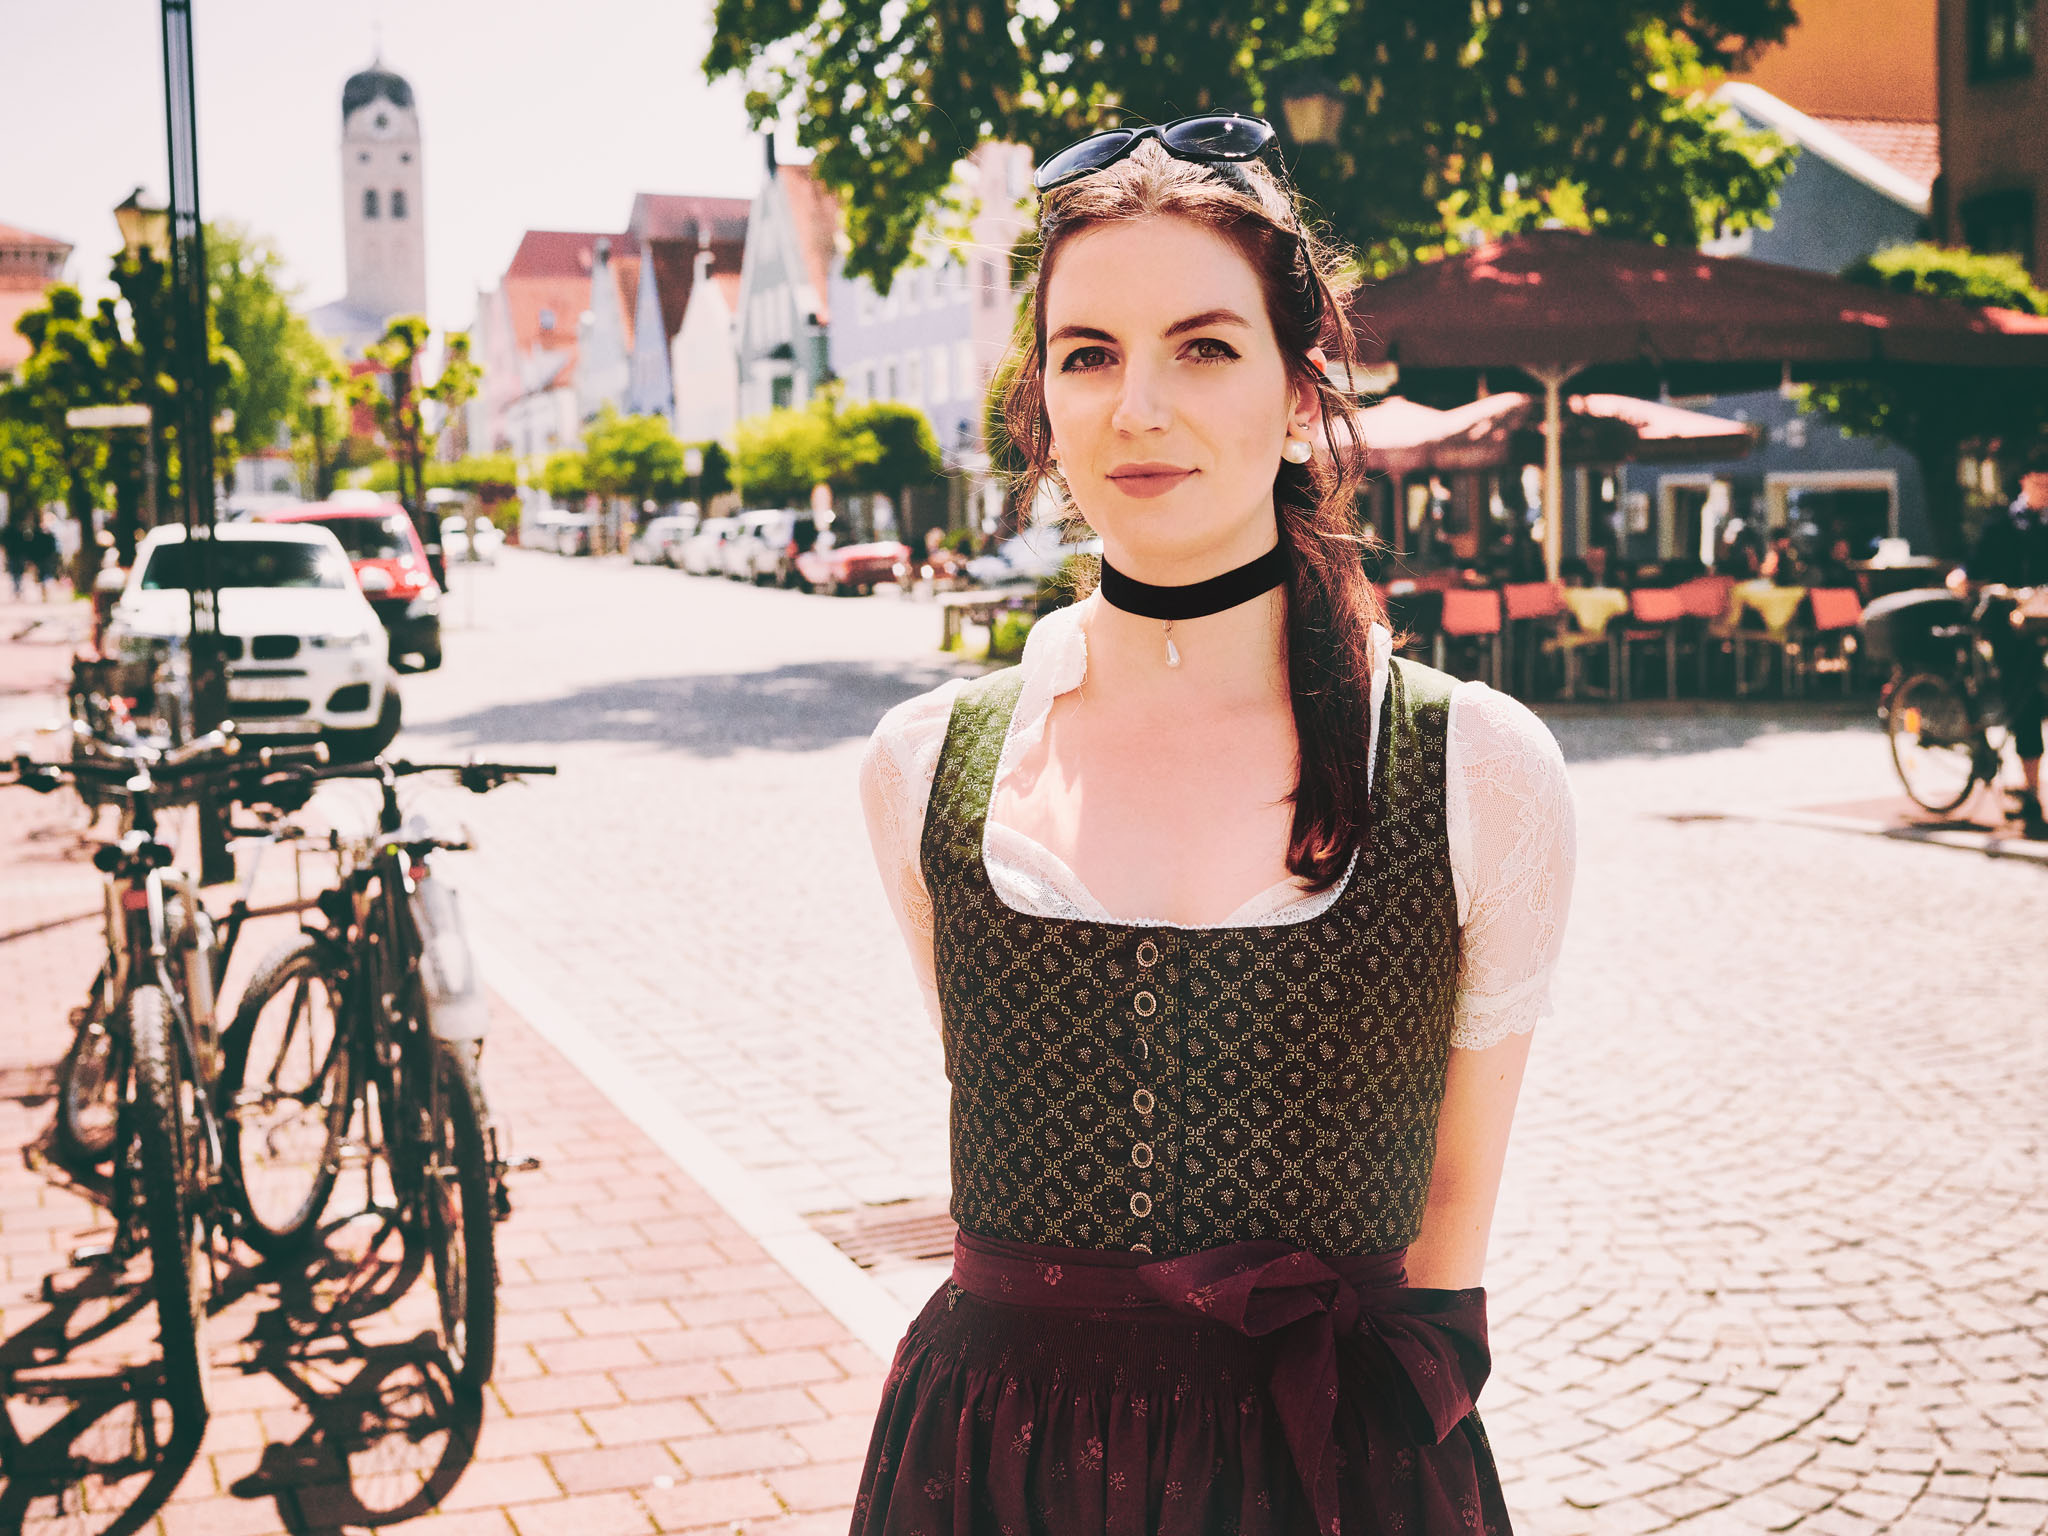 DIRNDL LIEBE/ HOW TO WEAR DIRNDL